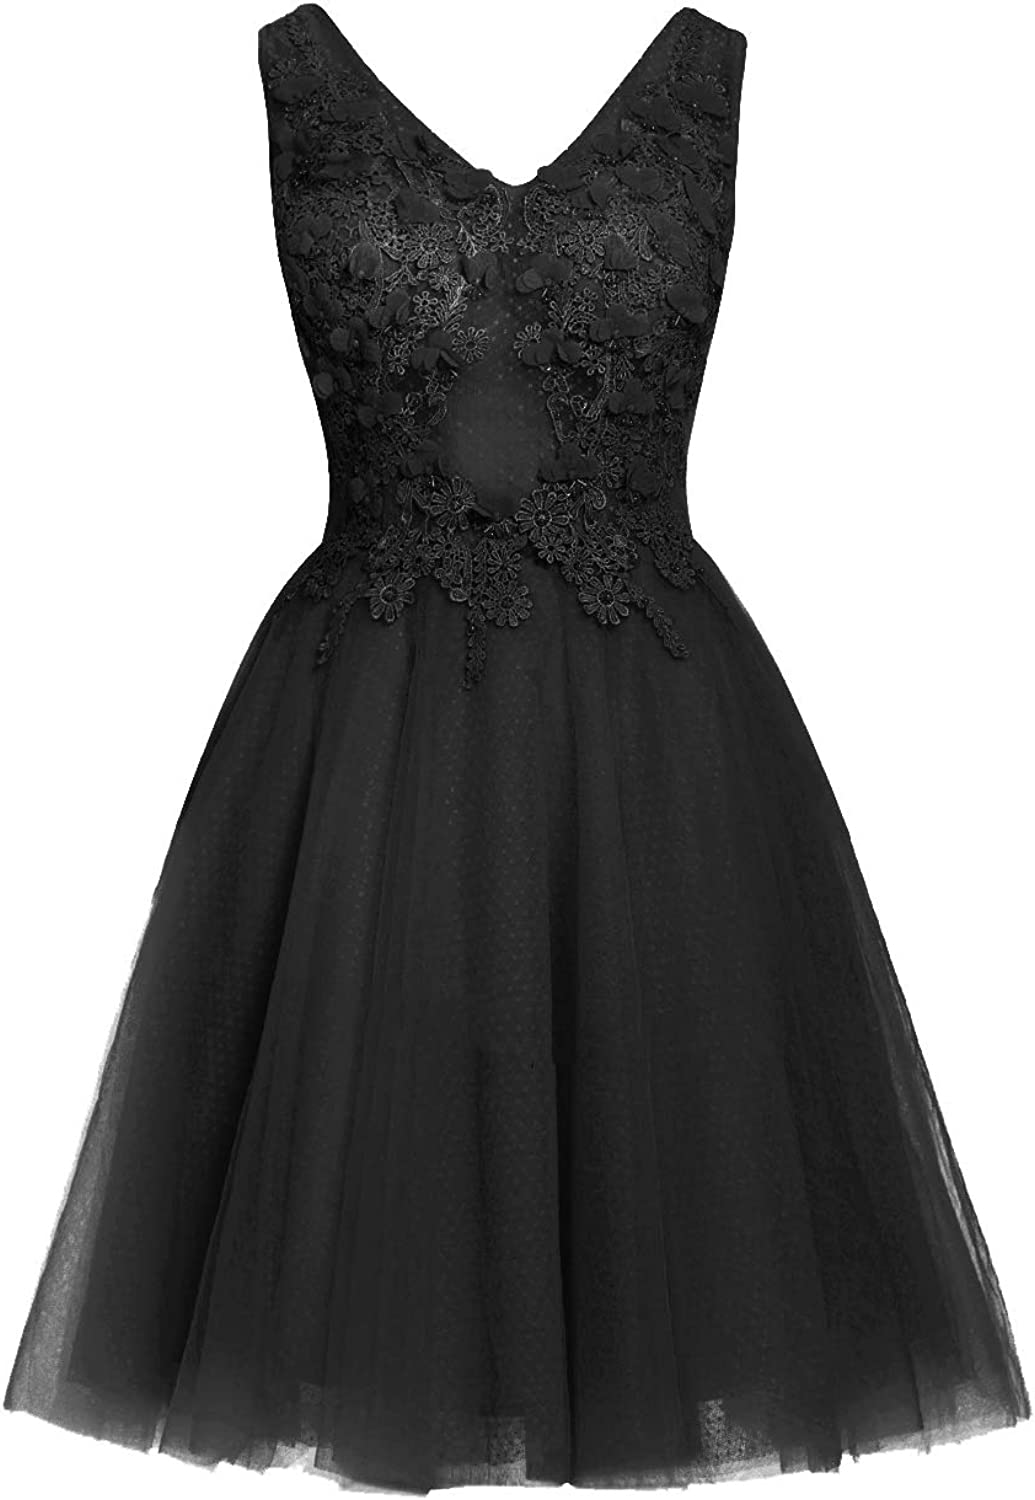 Uther Short Homecoming Dresses Lace Appliques 2018 Prom Wedding Party Dress V Neck